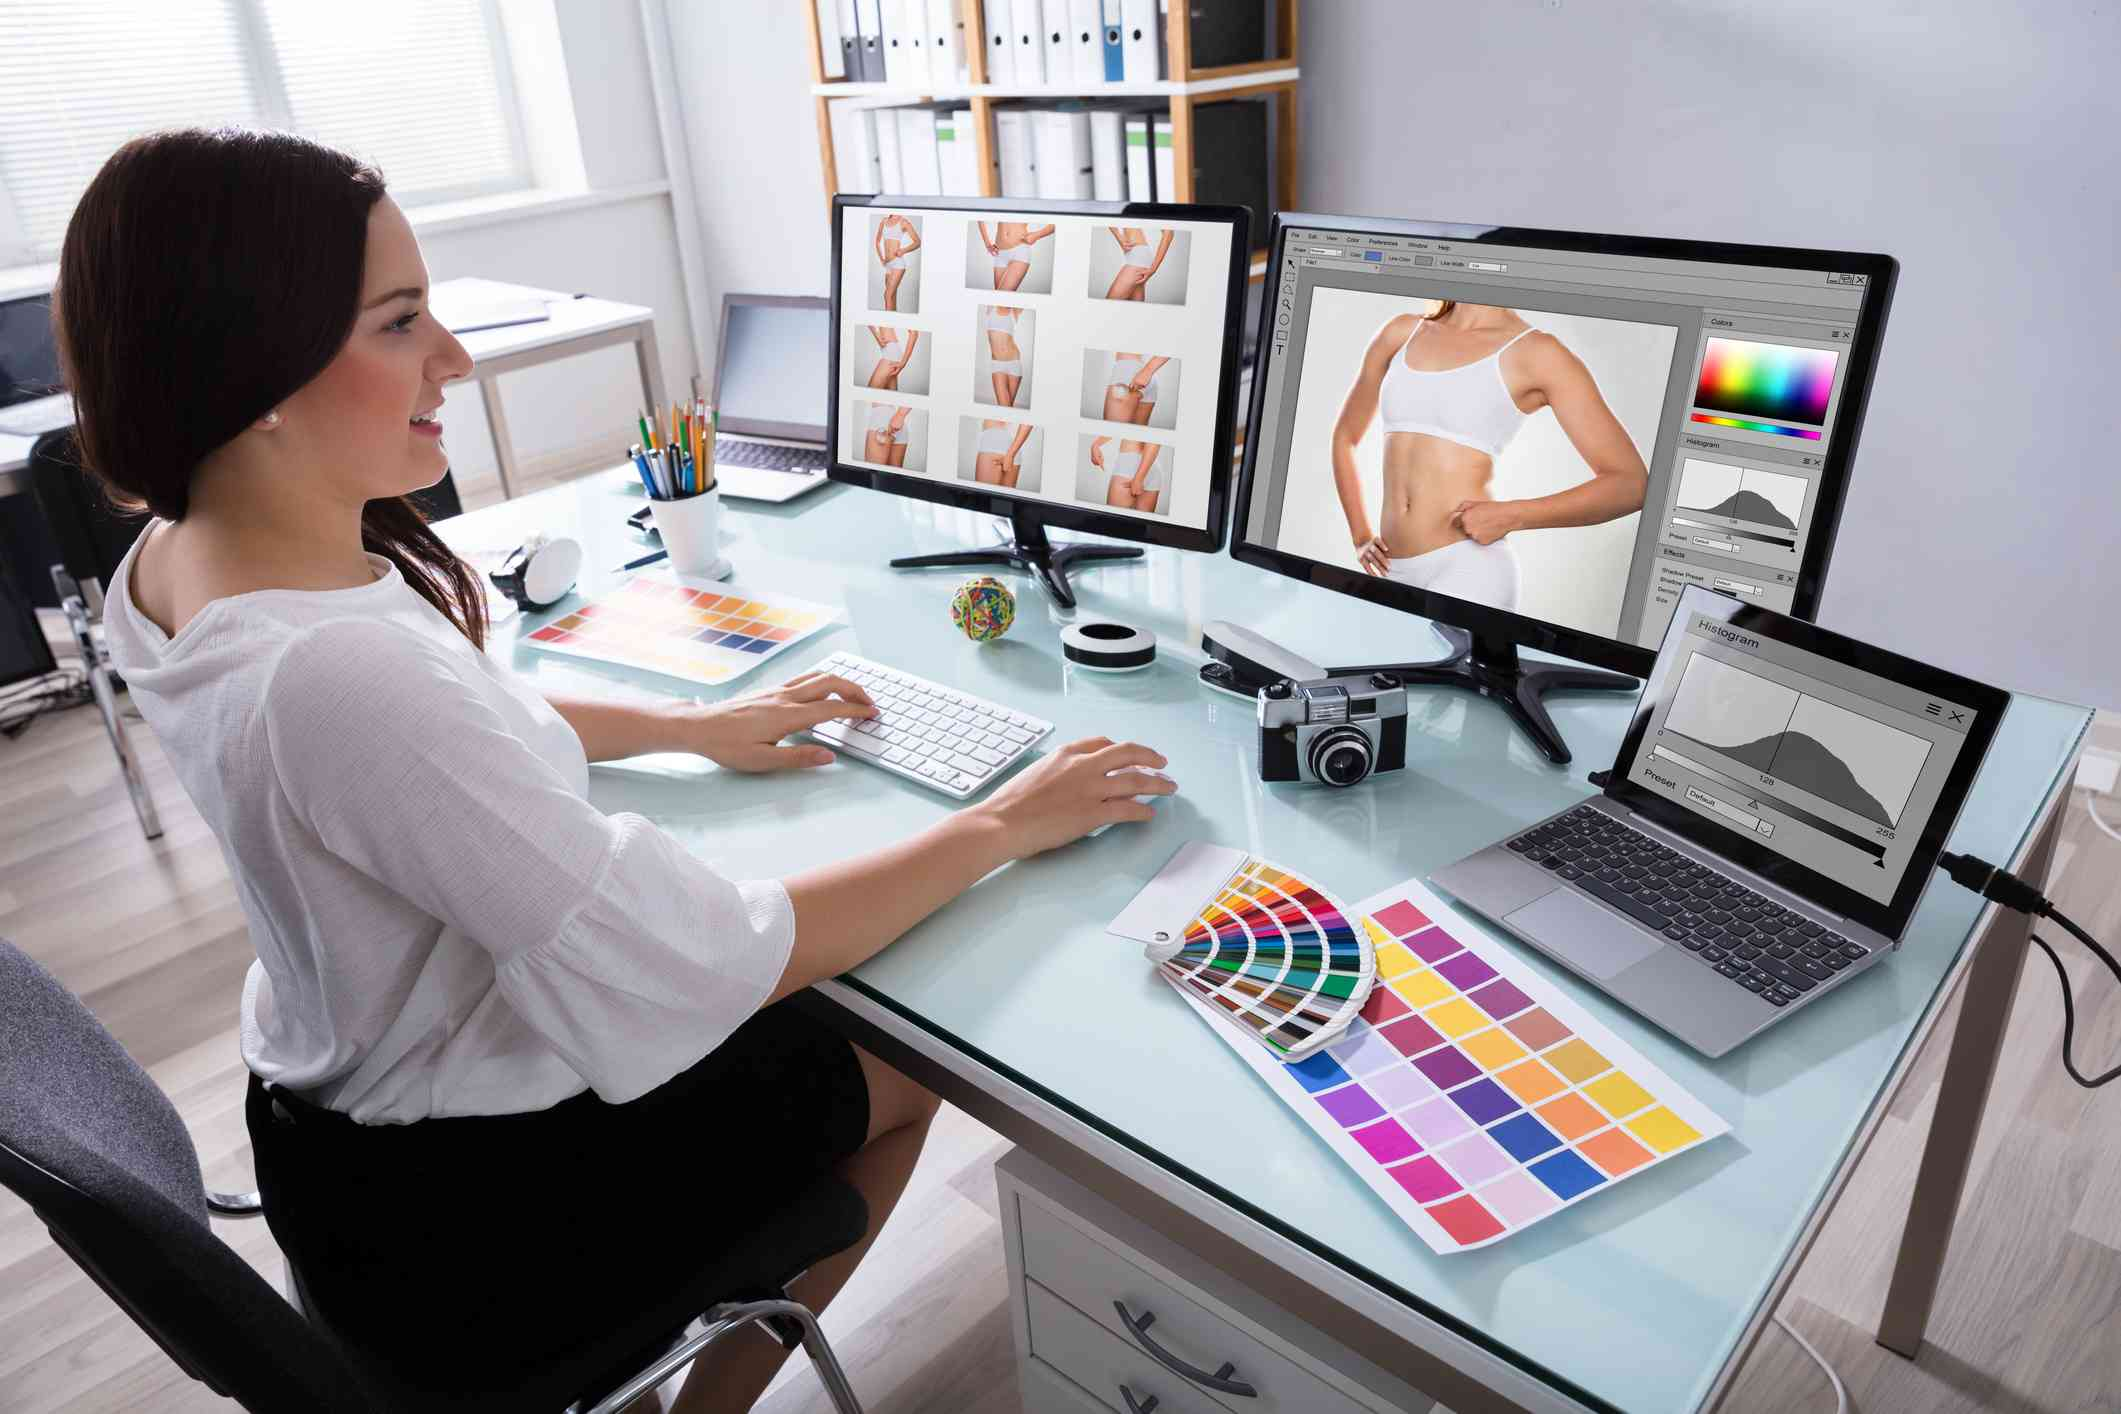 Someone retouching photos on two computer screens in a home office.